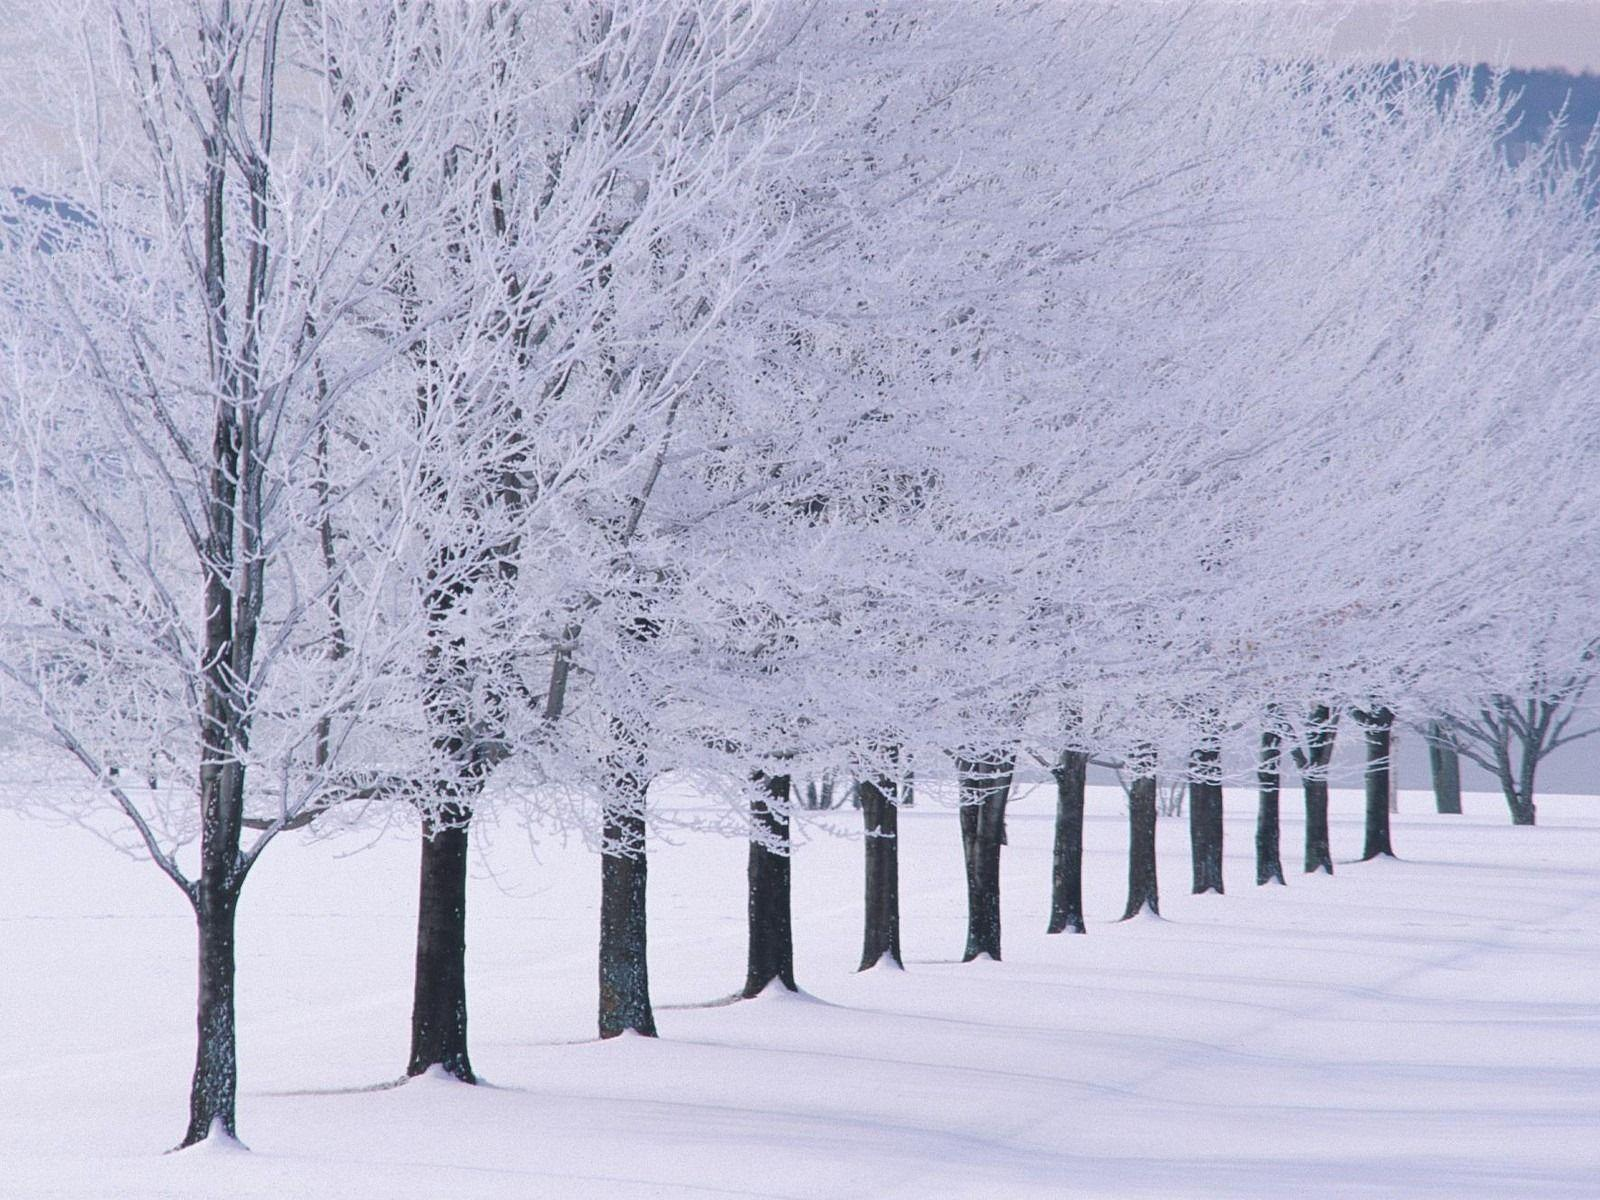 Winter HD Desktop Wallpaper